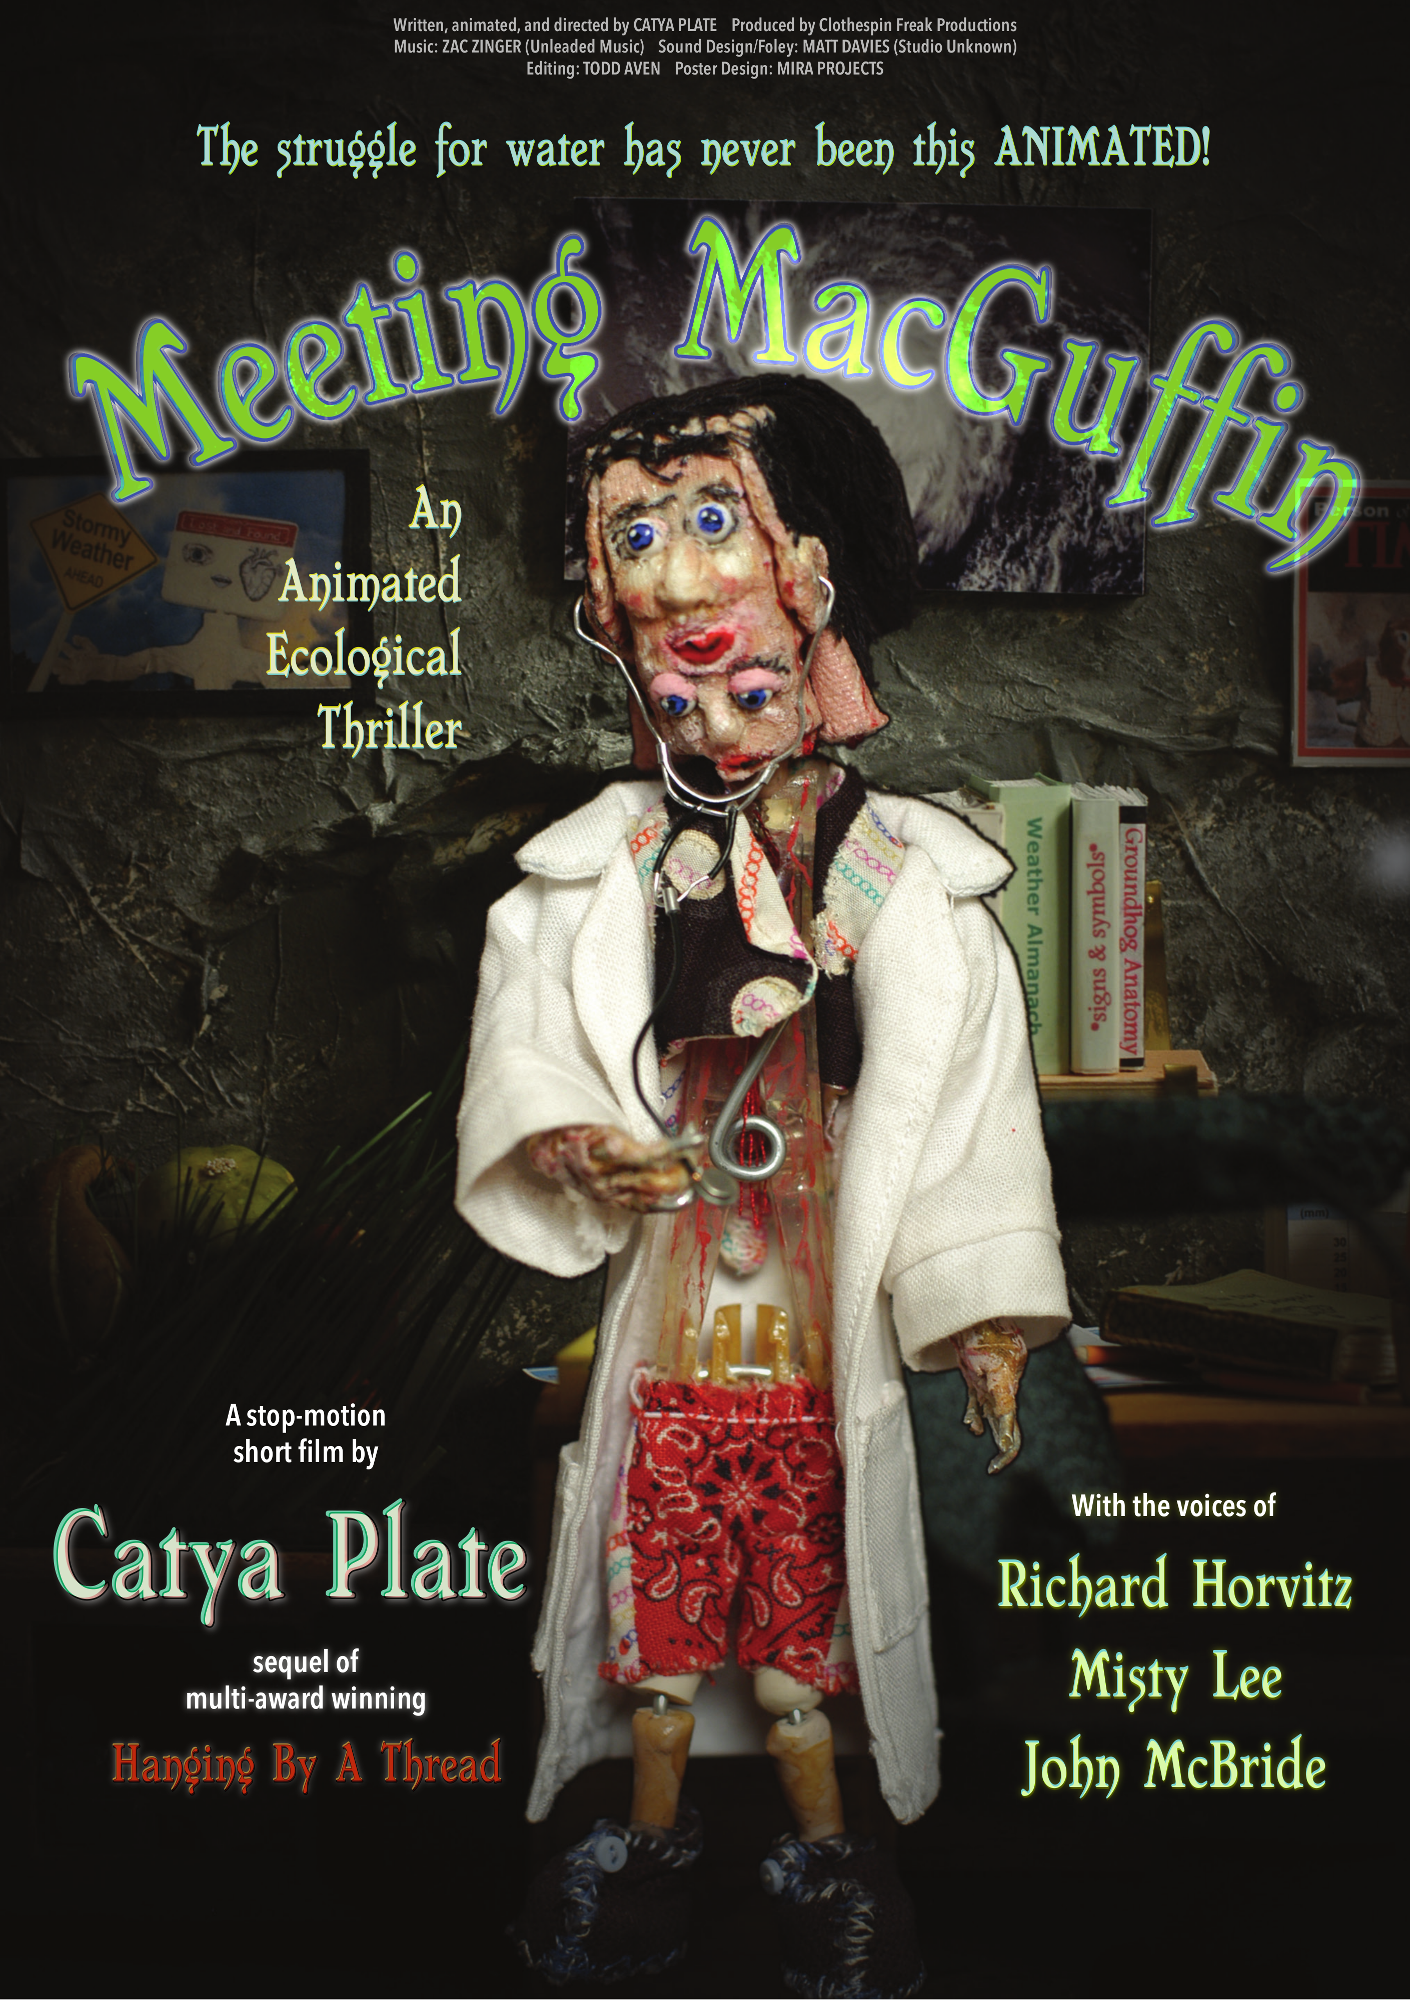 """Reviews and Featured Articles:  Meeting MacGuffin: An Artistic Commentary on Climate Change,  Palak Jayswal ,  Scorpius Magazine .  Meeting MacGuffin Short Film review,  screencritix .  'Meeting MacGuffin' Is The Best Stop-Motion, Ecological Thriller Out There!,  Indie Shorts Mag .  Meeting MacGuffin,  Reviews by Amos Lassen .  Meeting MacGuffin short film, Hannah Sayer,  UK Film Review .  Meeting MacGuffin,  IndyRed Reviews .  Meeting MacGuffin,  ReelRomp .  Meeting MacGuffin,  22 Indie Street .  Chasing MacGuffin (2017) LaFemme International Film Festival, Steve Kopian,  Unseen Films .   RIIFF VORTEX 2017 Filmmaker Spotlight Series: """"Meeting MacGuffin,"""" Directed By Catya Plate ."""